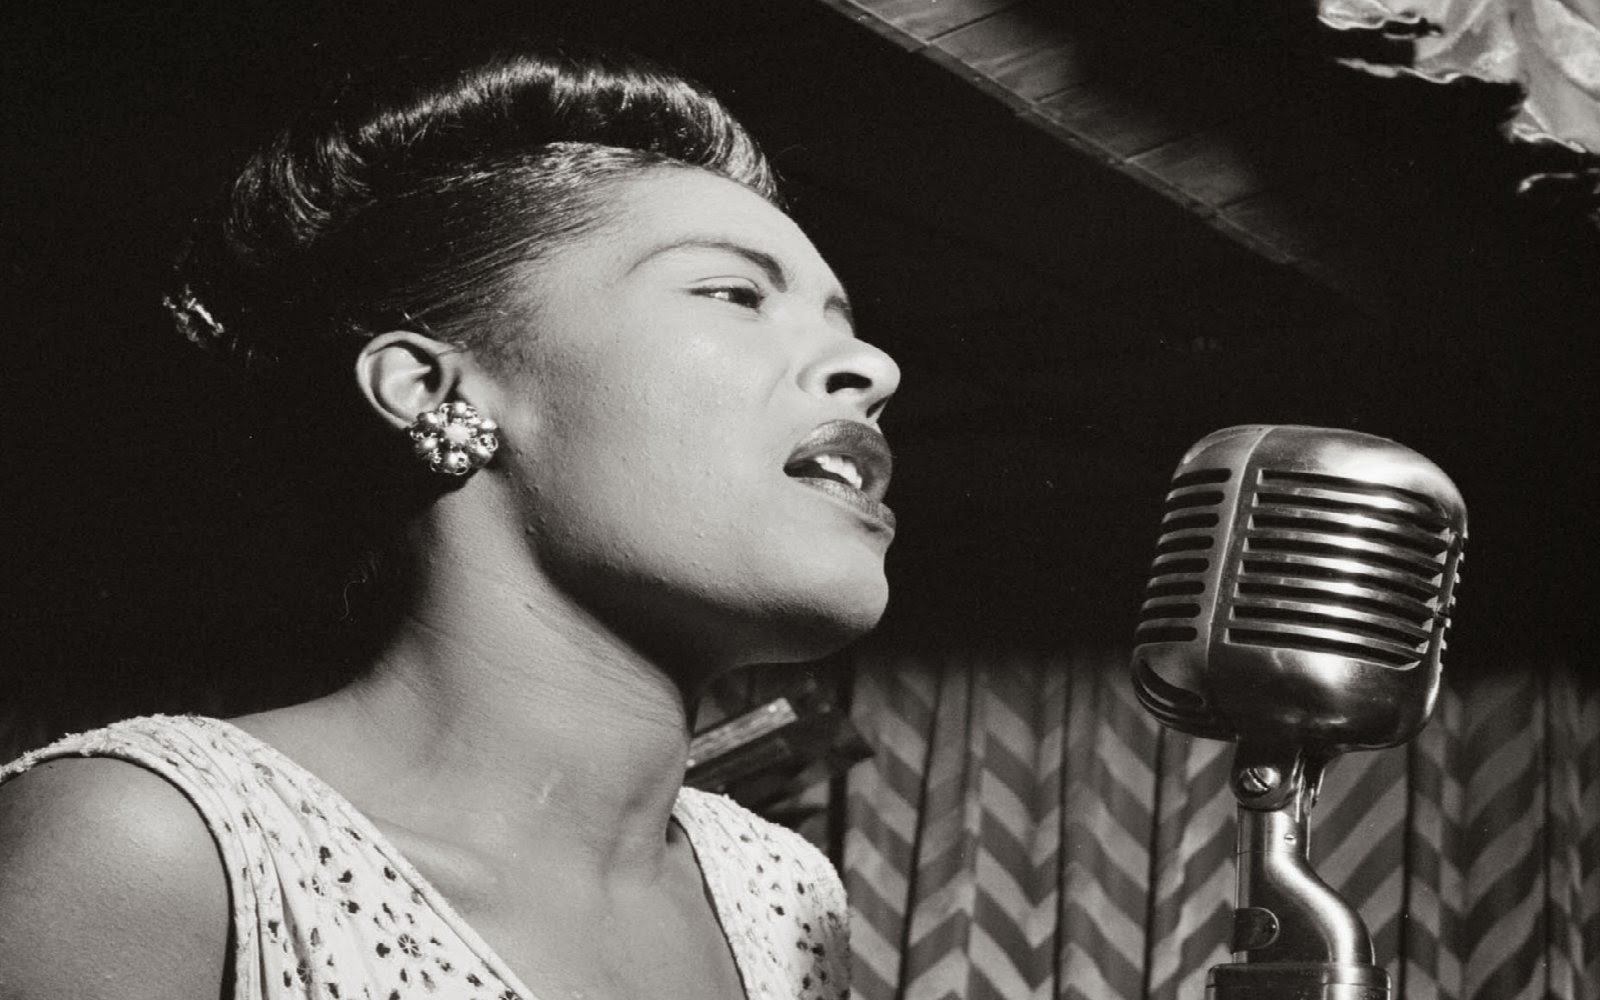 Le migliori cantanti: Billie Holiday